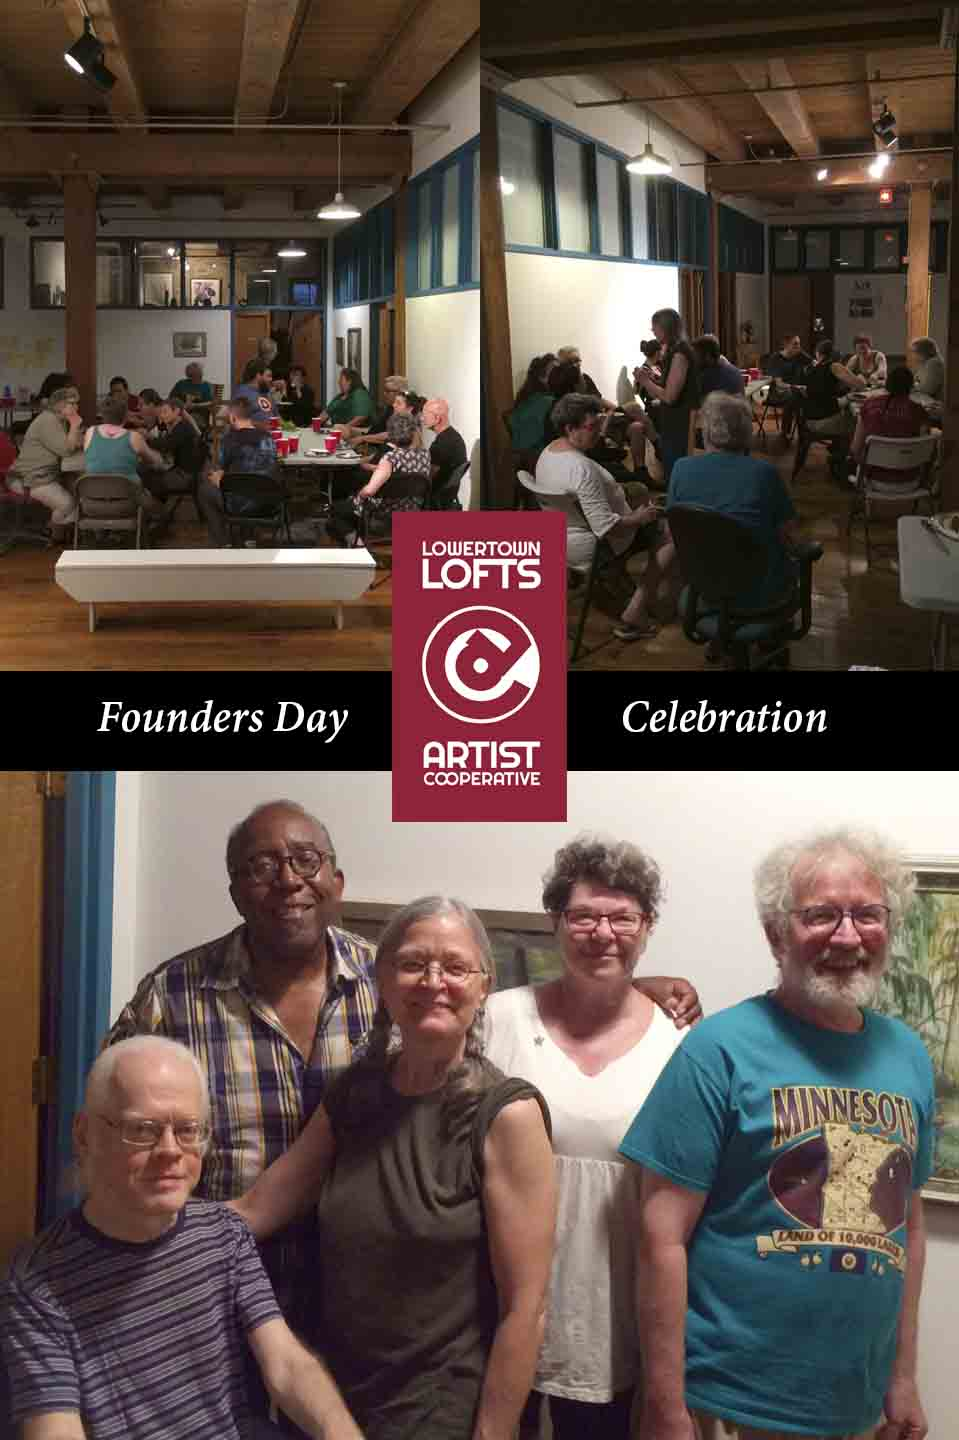 Founding members still living at Lowertown Lofts Cooperative. Left to right: David Eric Oie, Ta-coumba Aiken, Judith Morem, Marla Gamble, and Bob McBride.